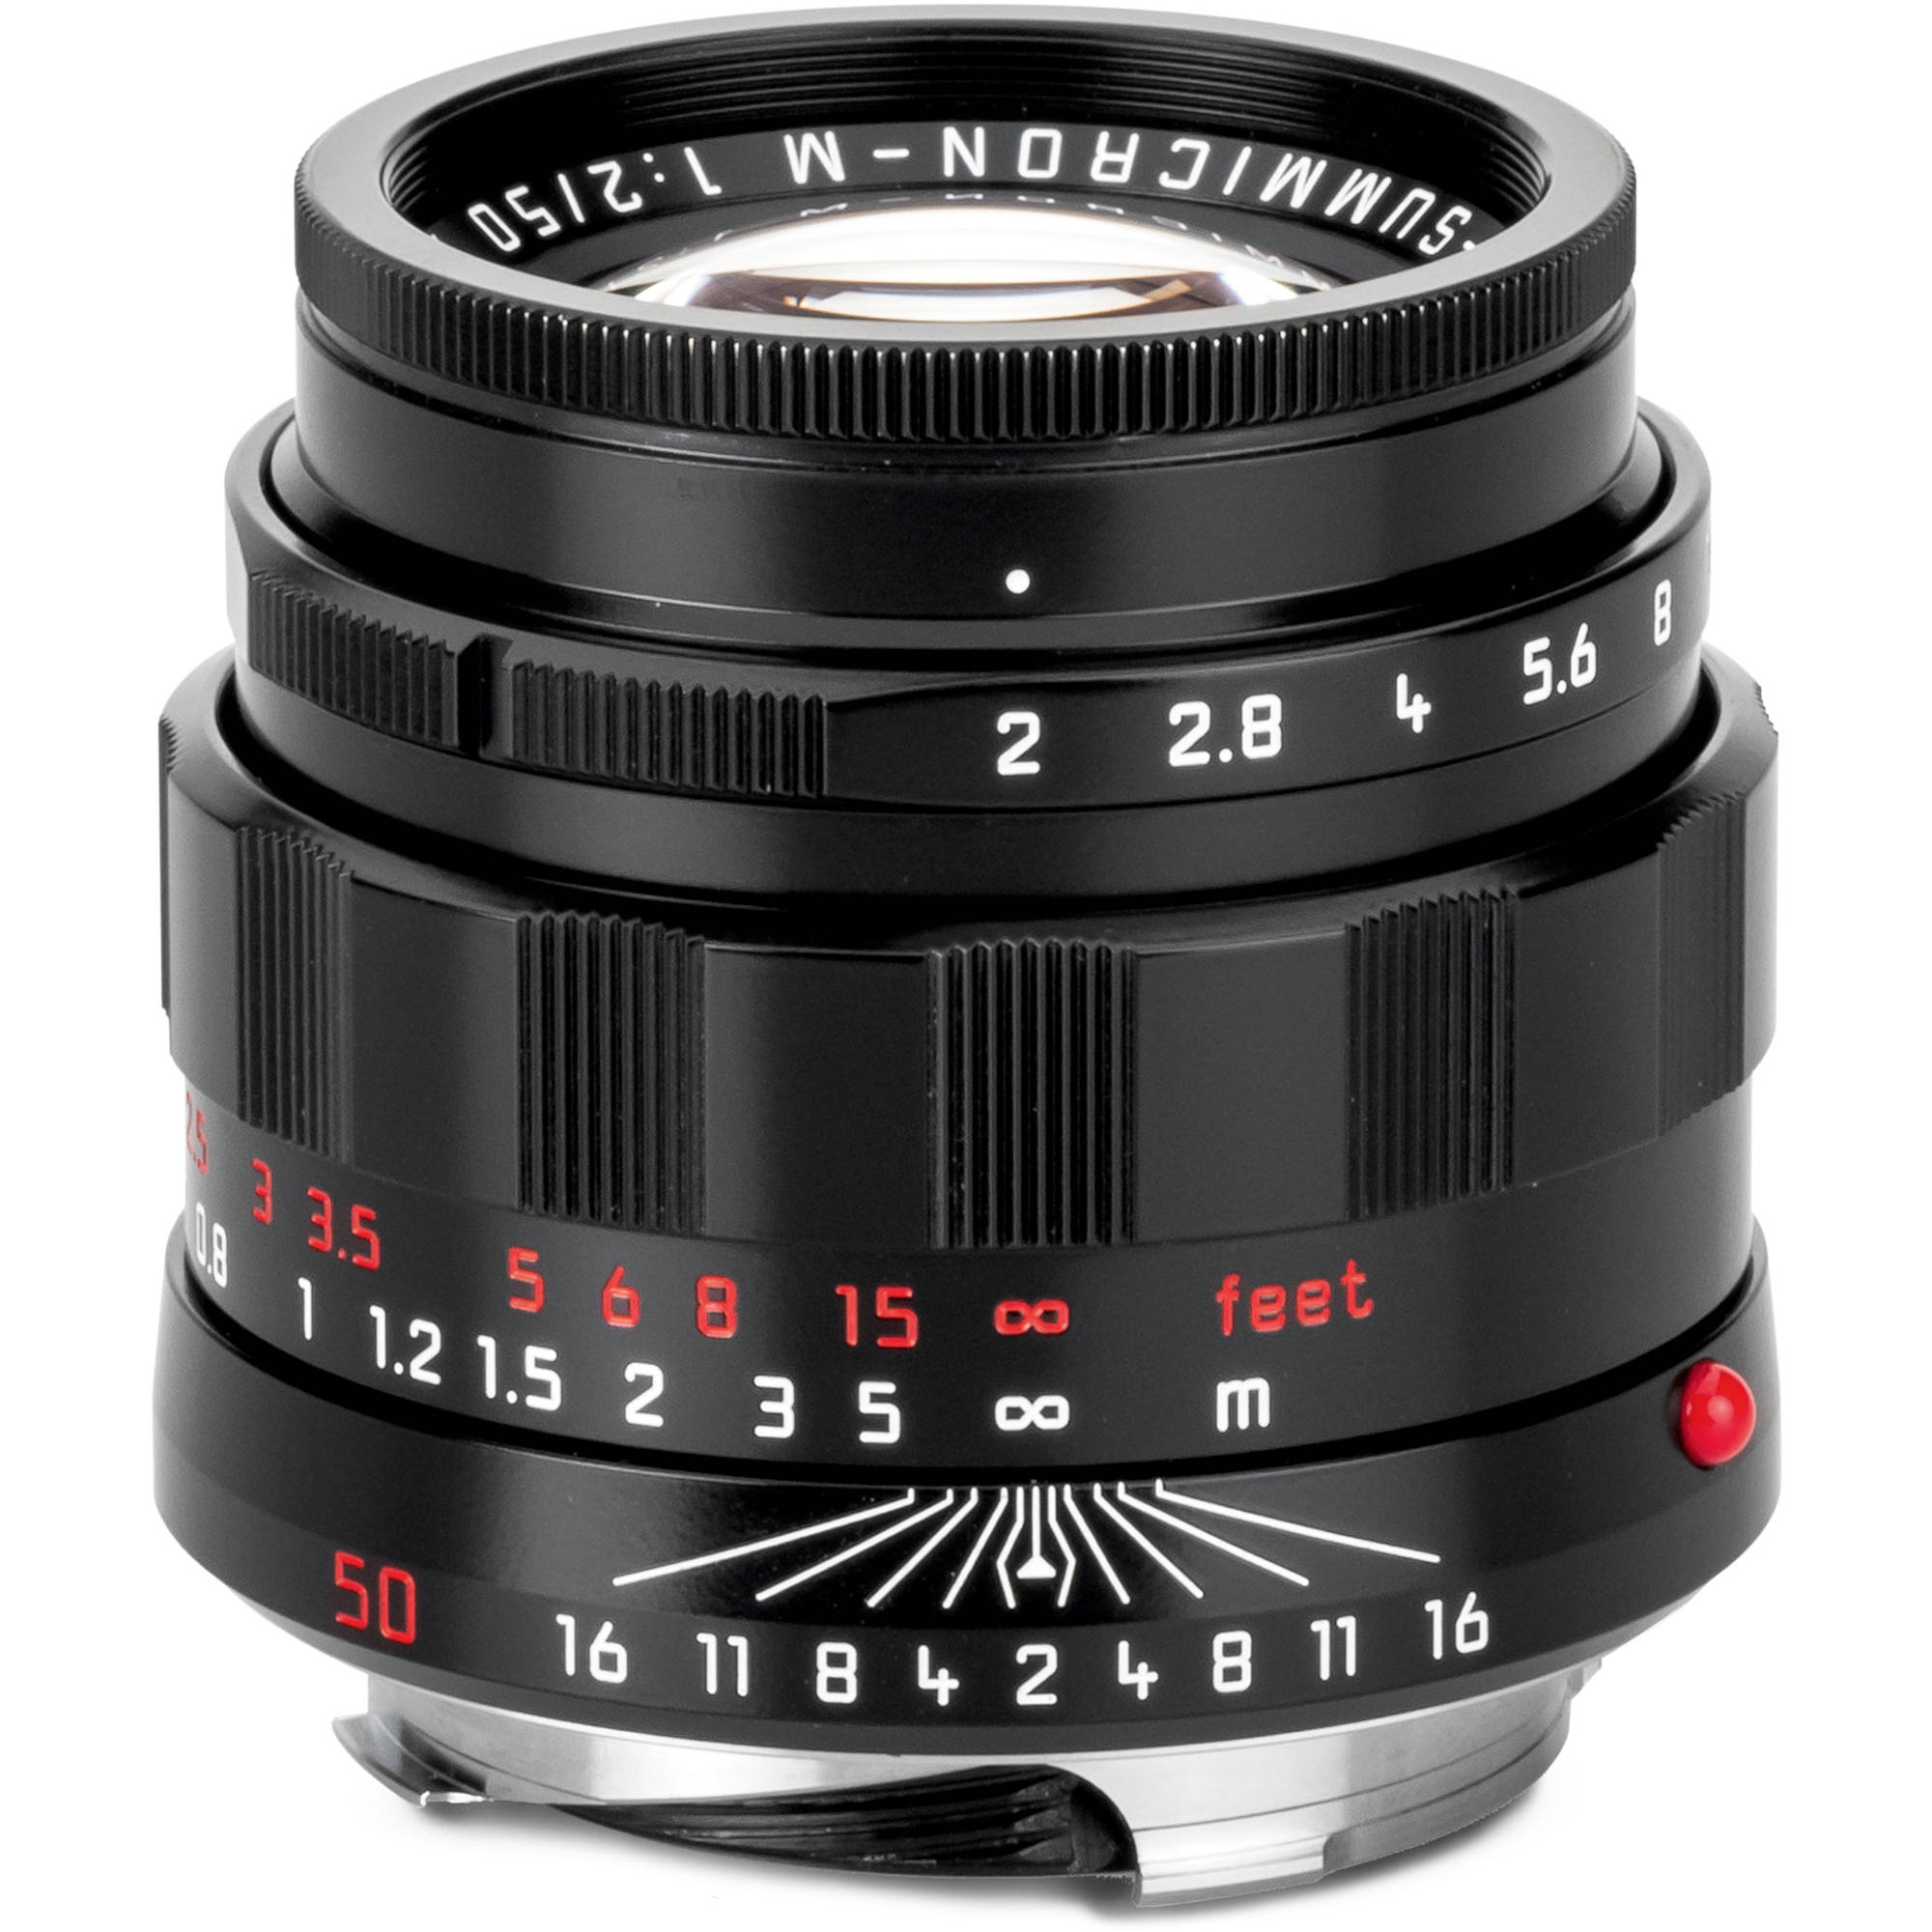 Leica Apo Summicron M 50mm F 2 Asph Lens Lhsa Edition Black Paint